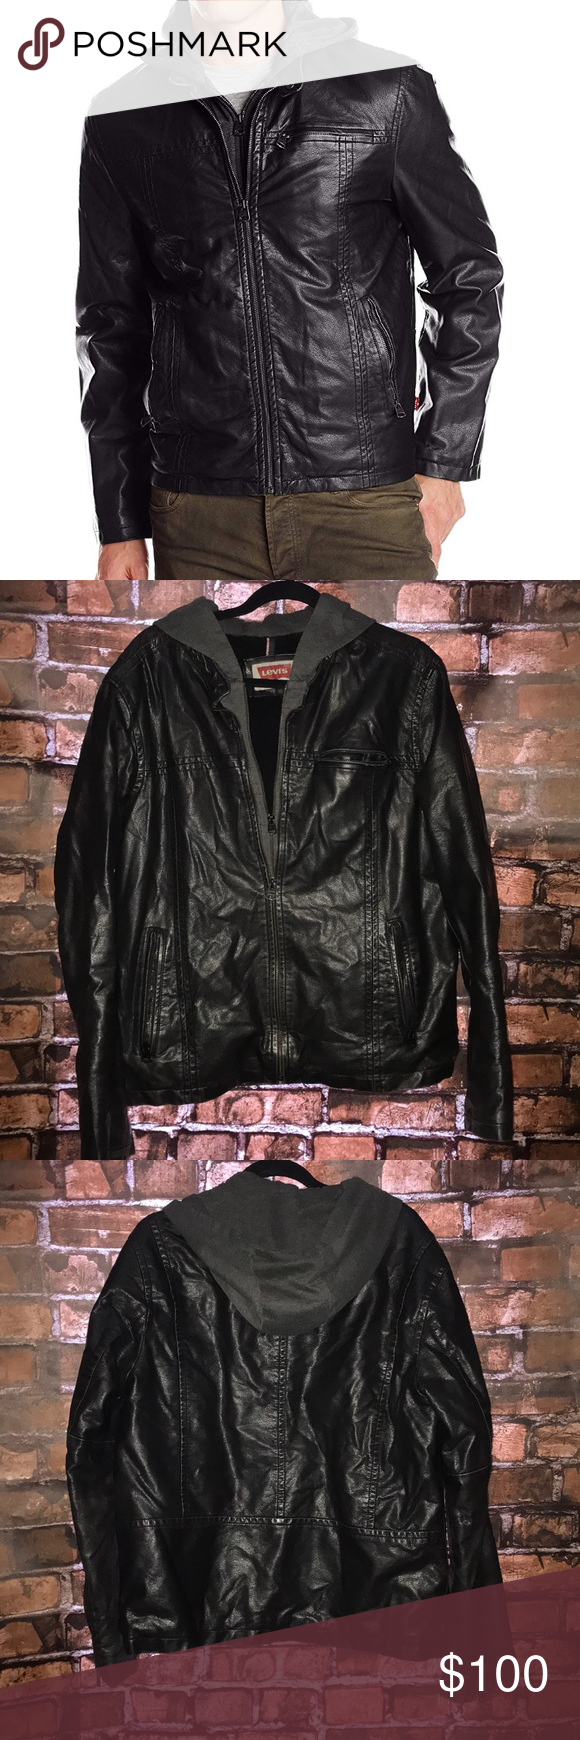 Levi S Faux Leather Jacket With Hood Leather Jacket With Hood Leather Jacket Jackets For Women [ 1740 x 580 Pixel ]